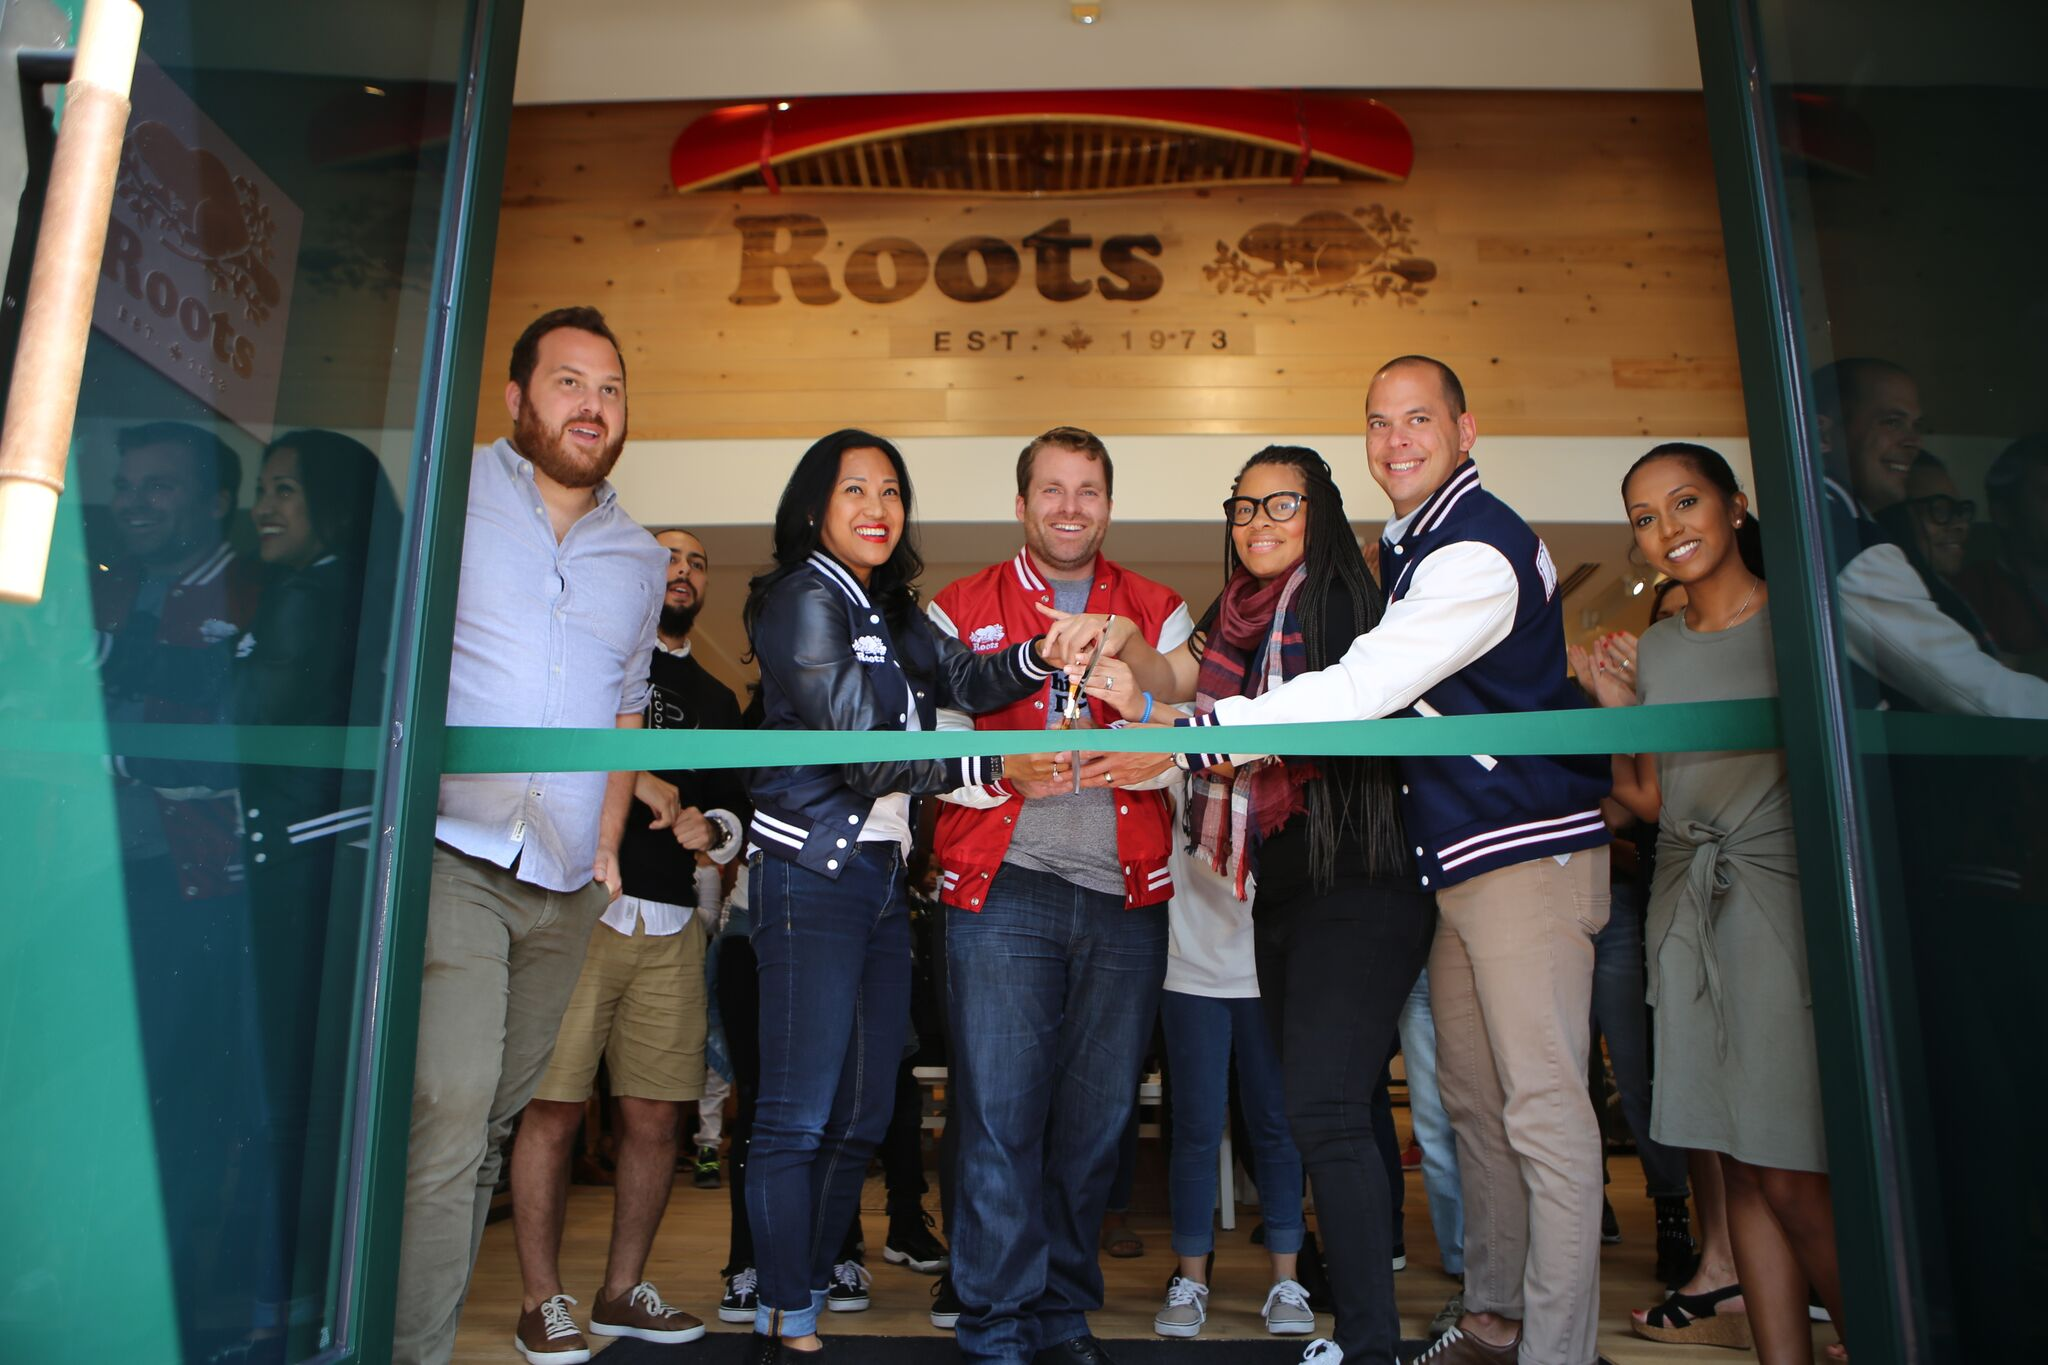 Almira Cuizon, Sean Ball, Freda Fanning and Alex Jones from Roots opened the Georgetown Roots store with a ribbon-cutting ceremony.{&amp;nbsp;} (Image: Courtesy Roots)<p></p>